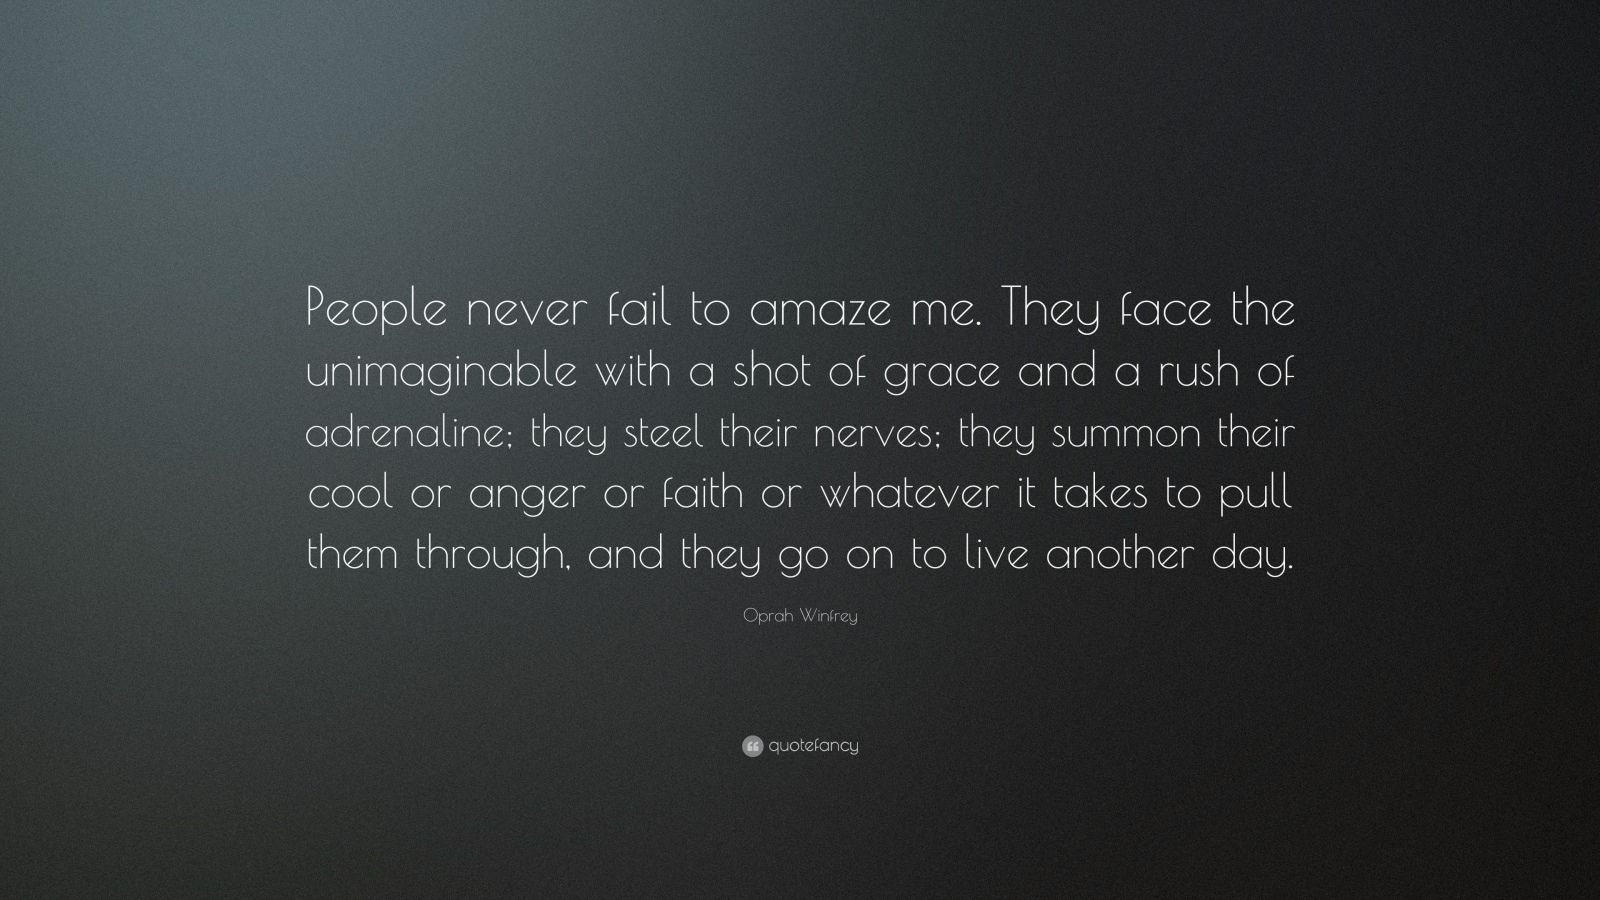 """Oprah Winfrey Quote: """"People never fail to amaze me. They face the unimaginable with a shot of grace and a rush of adrenaline; they steel their nerves; they summon their cool or anger or faith or whatever it takes to pull them through, and they go on to live another day."""""""